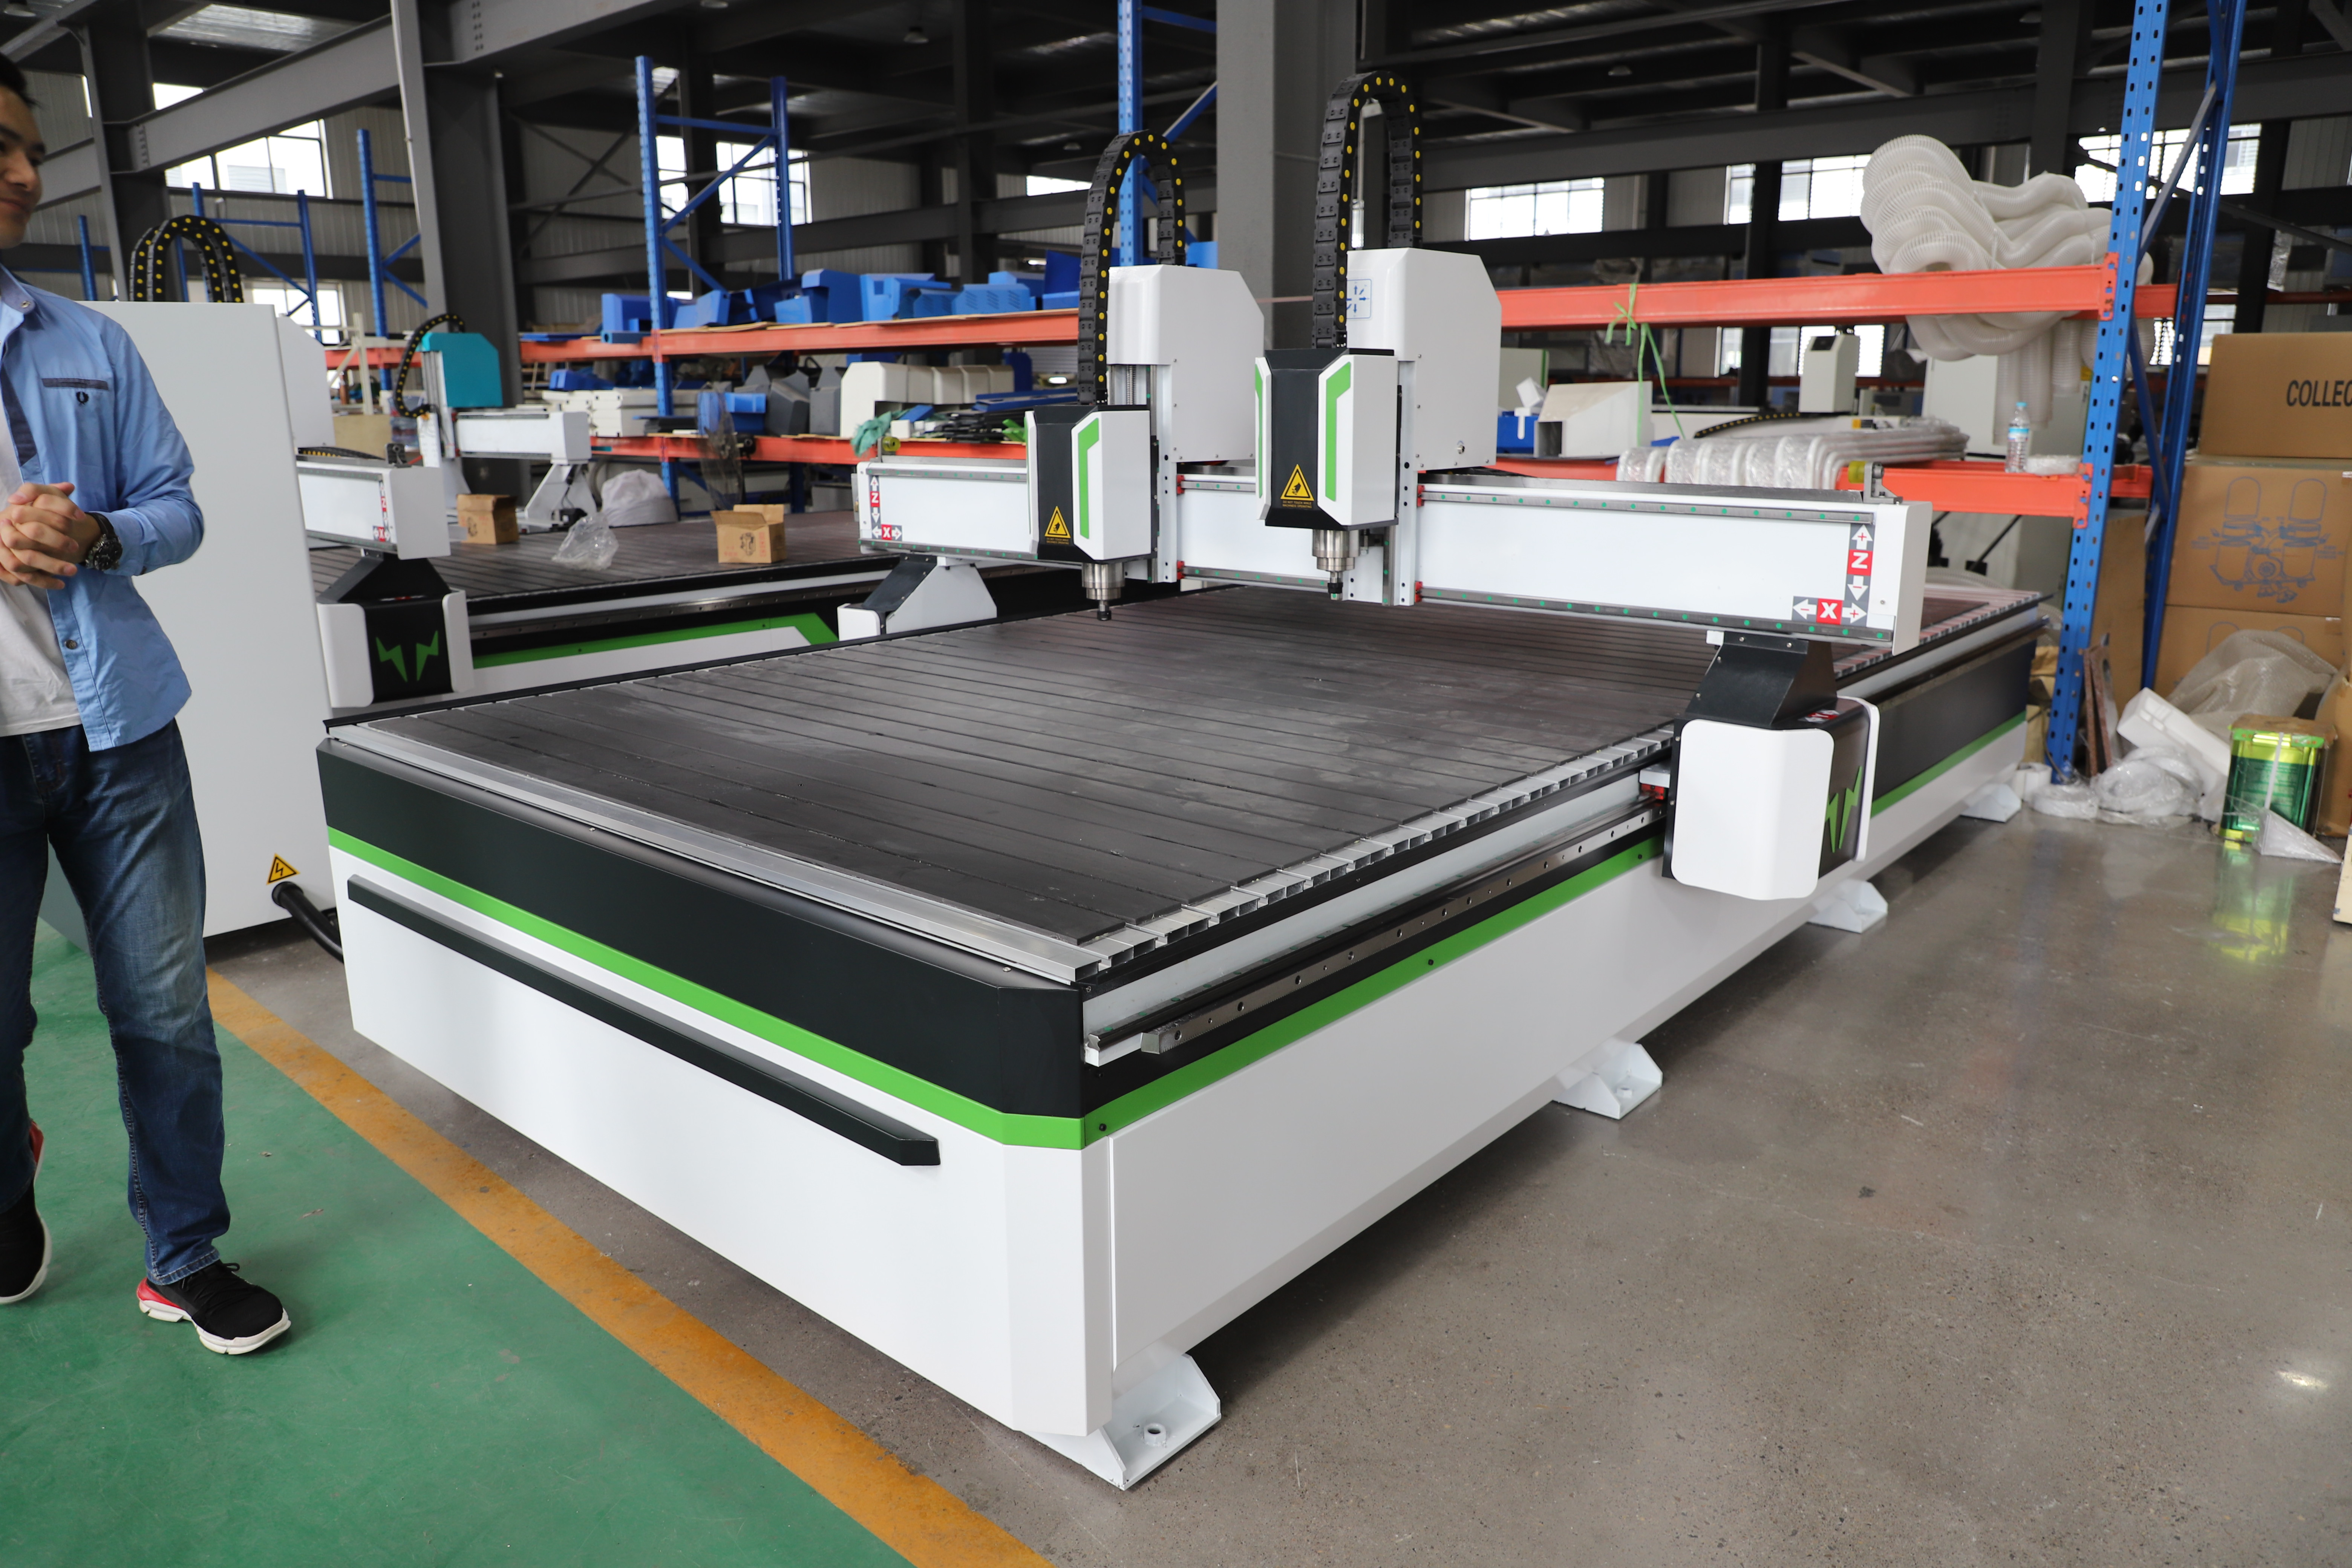 CNC Router Summary of common problems and solutions